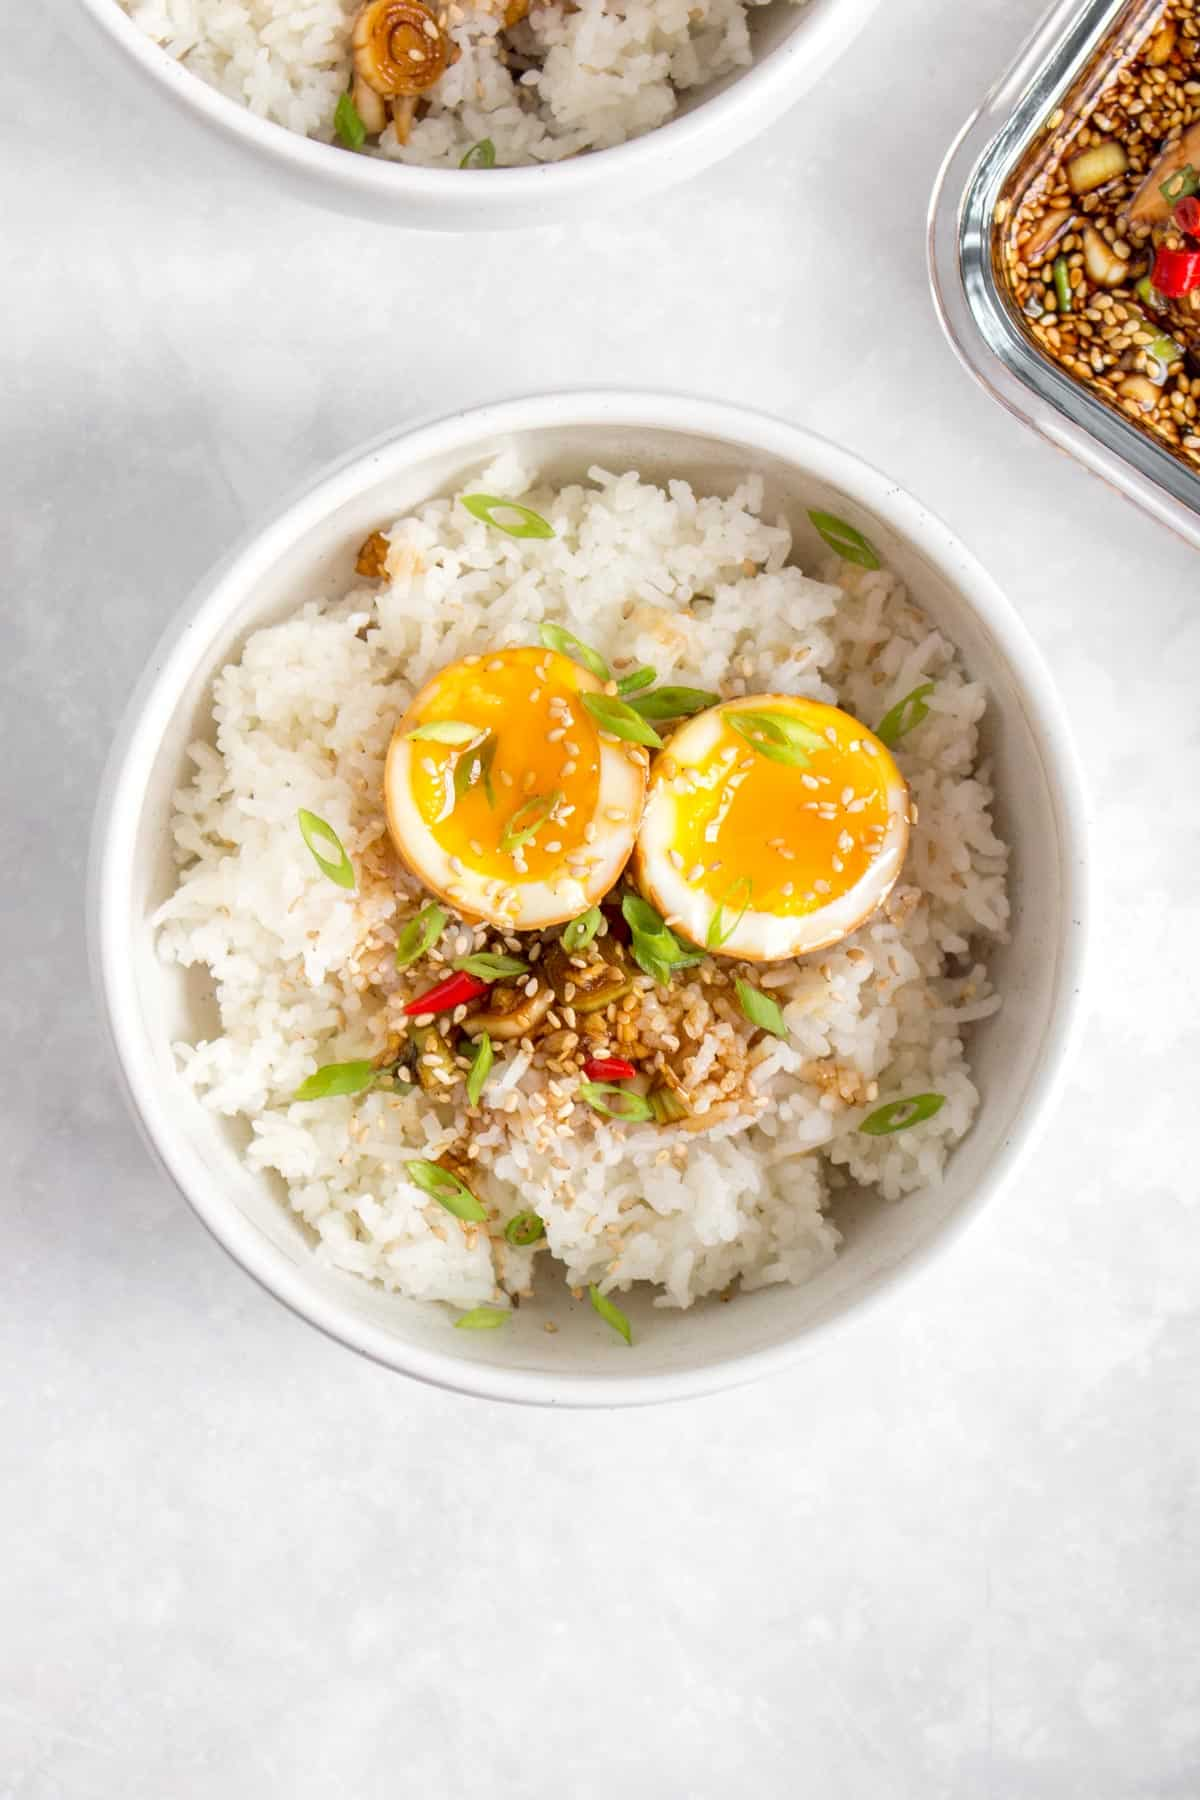 Overhead view of a bowl of rice with Korean marinated egg.